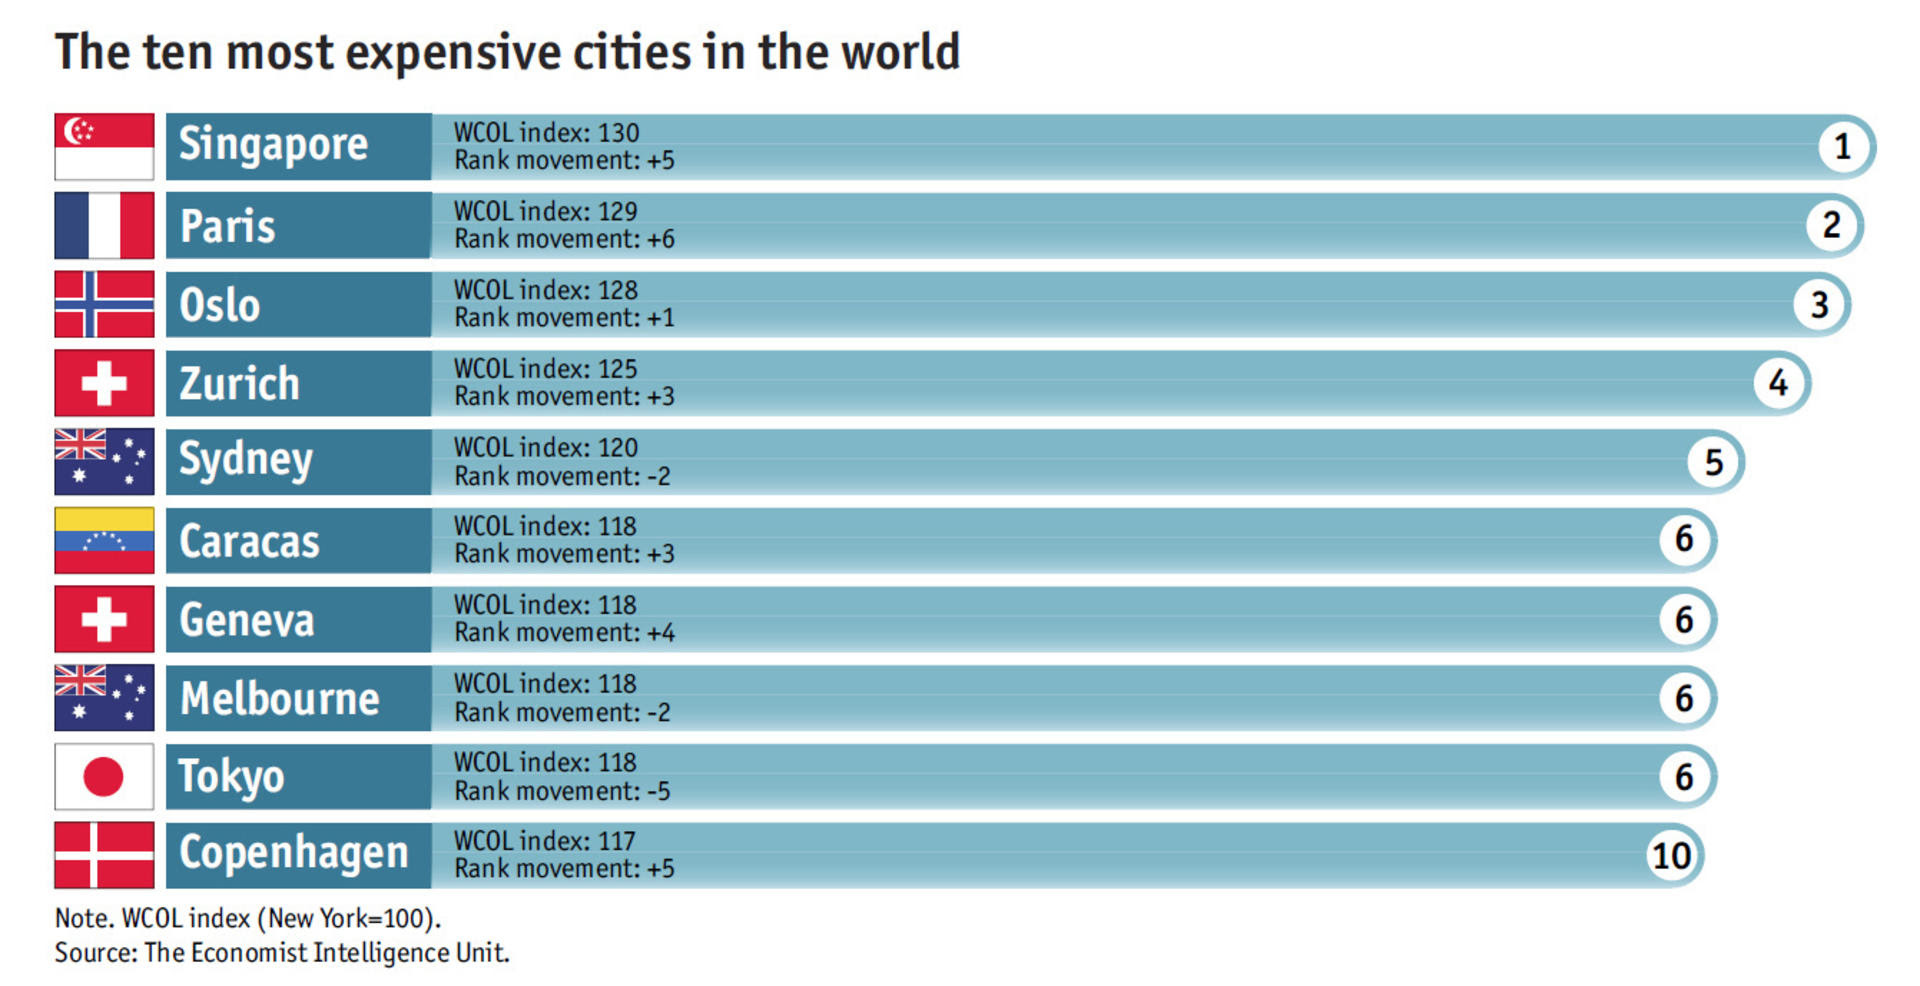 Singapore most expensive city in the world